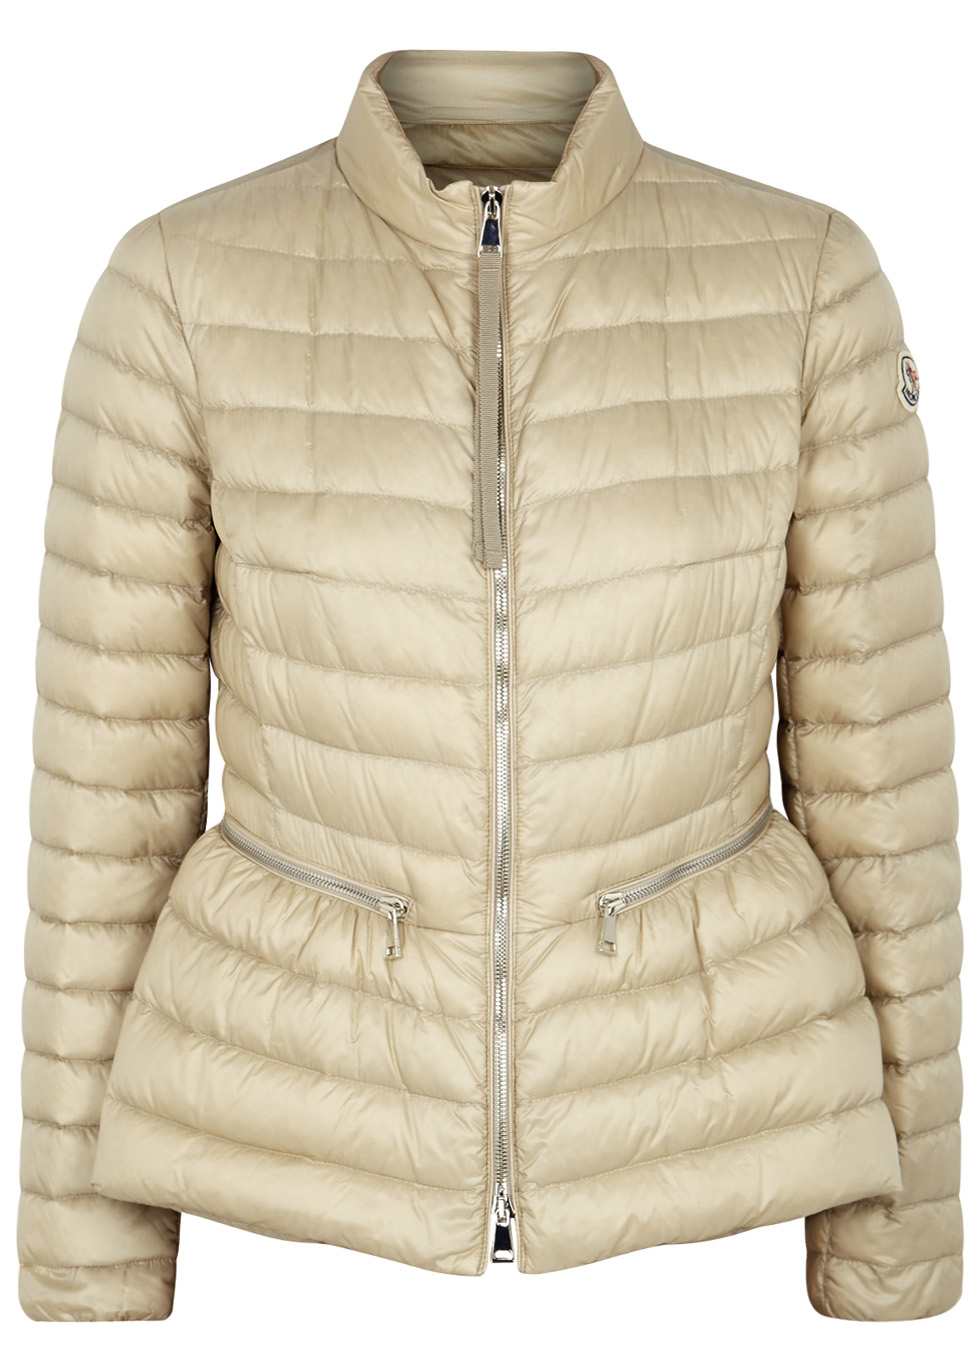 Agate ecru quilted shell jacket - Moncler